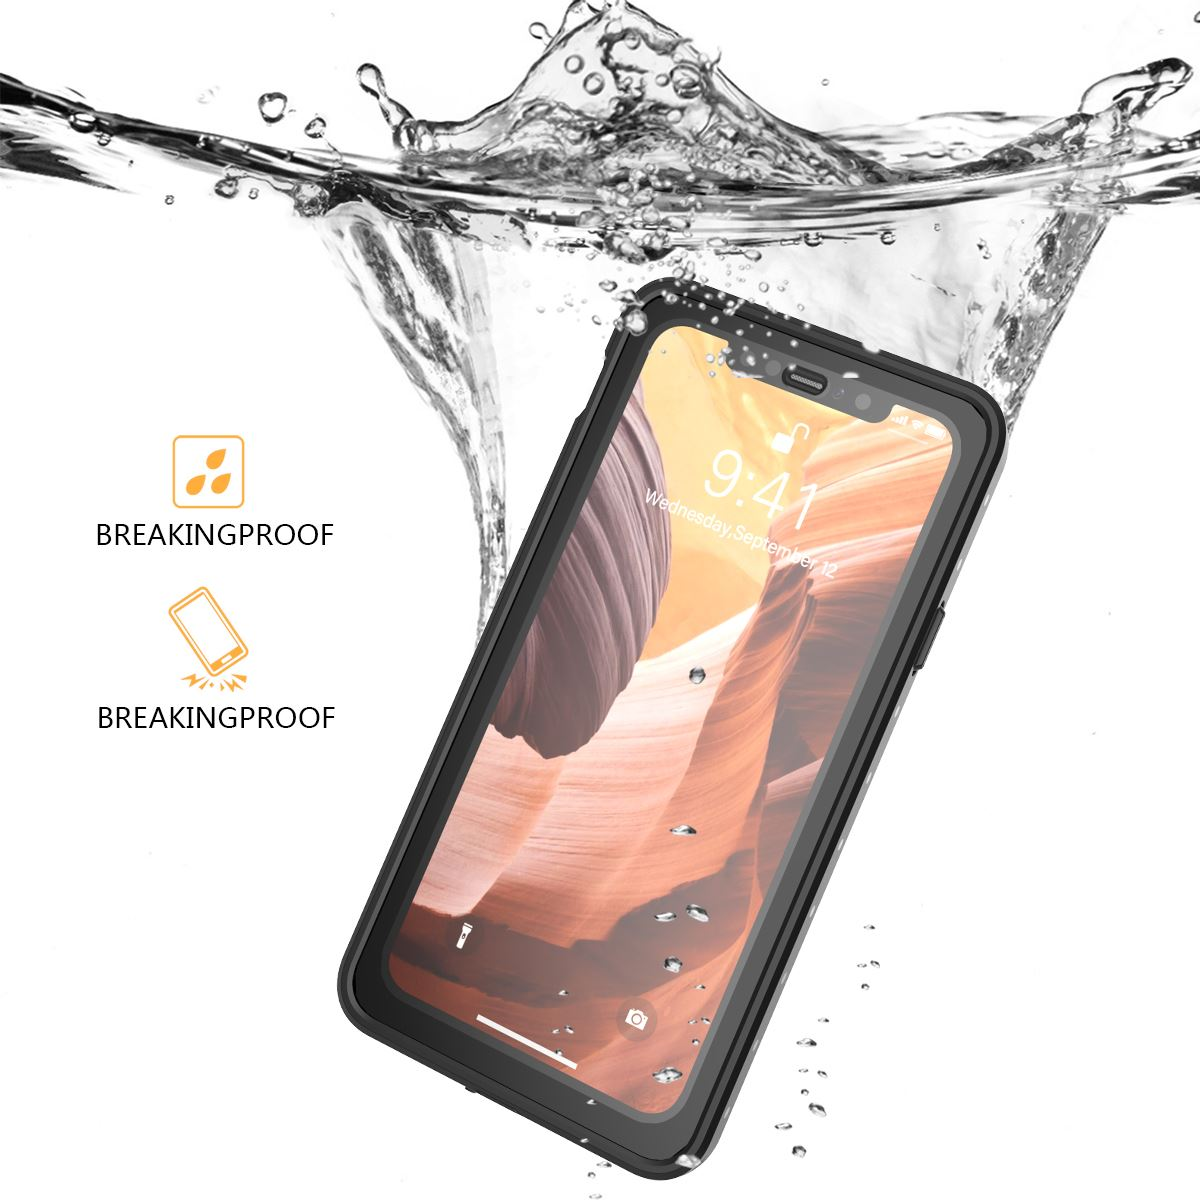 For iPhone 12 Pro Max Waterproof Case Full Protection Snow Proof Underwater Case for iPhone 11 12 Pro XS MAX 7/8 Plus Coques